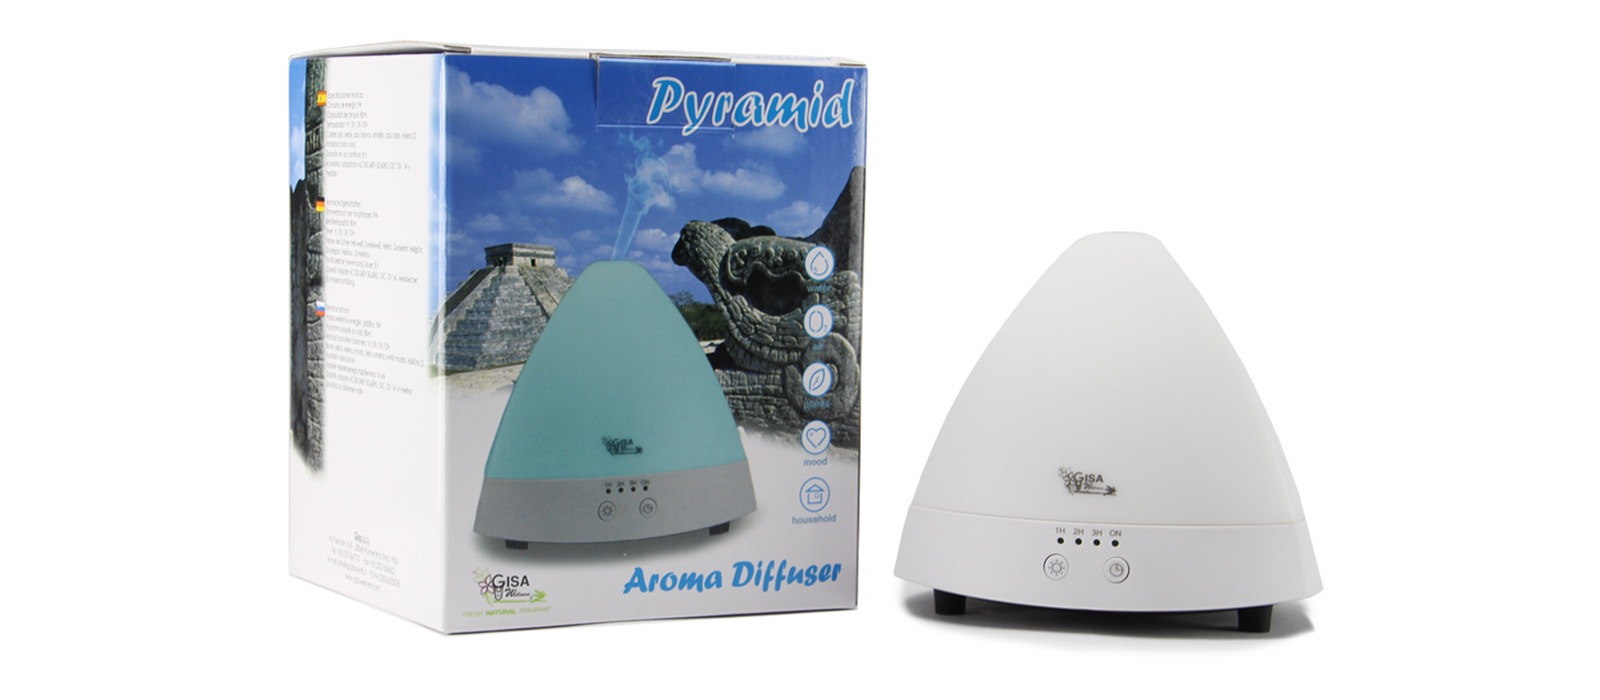 Pyramid - diffuser with separate tanks